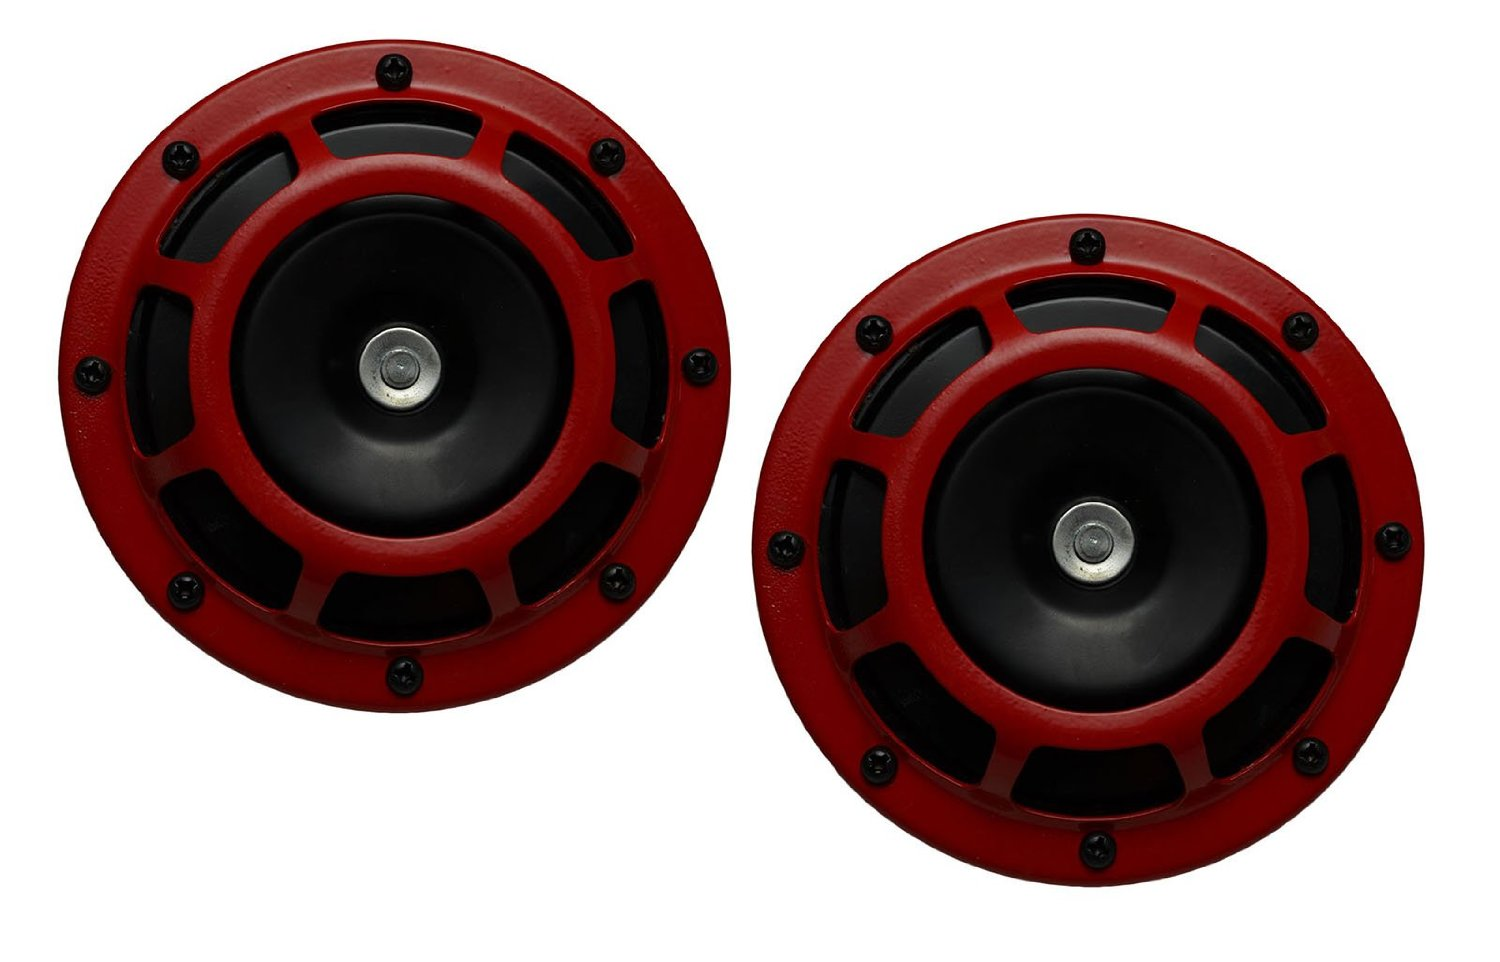 DUAL Super Tone LOUD Blast 139Db Universal Euro RED ROUND HORNS (Quantity 2) High Tone / Low Tone Twin Horn Kit with Bracket Pair Compact – Extremely LOUD for Car Bike Motorcycle Truck for Scion xB tC FR-S xA xD RS AE86 KIA Forte Soul Ford Fiesta Escort Contour